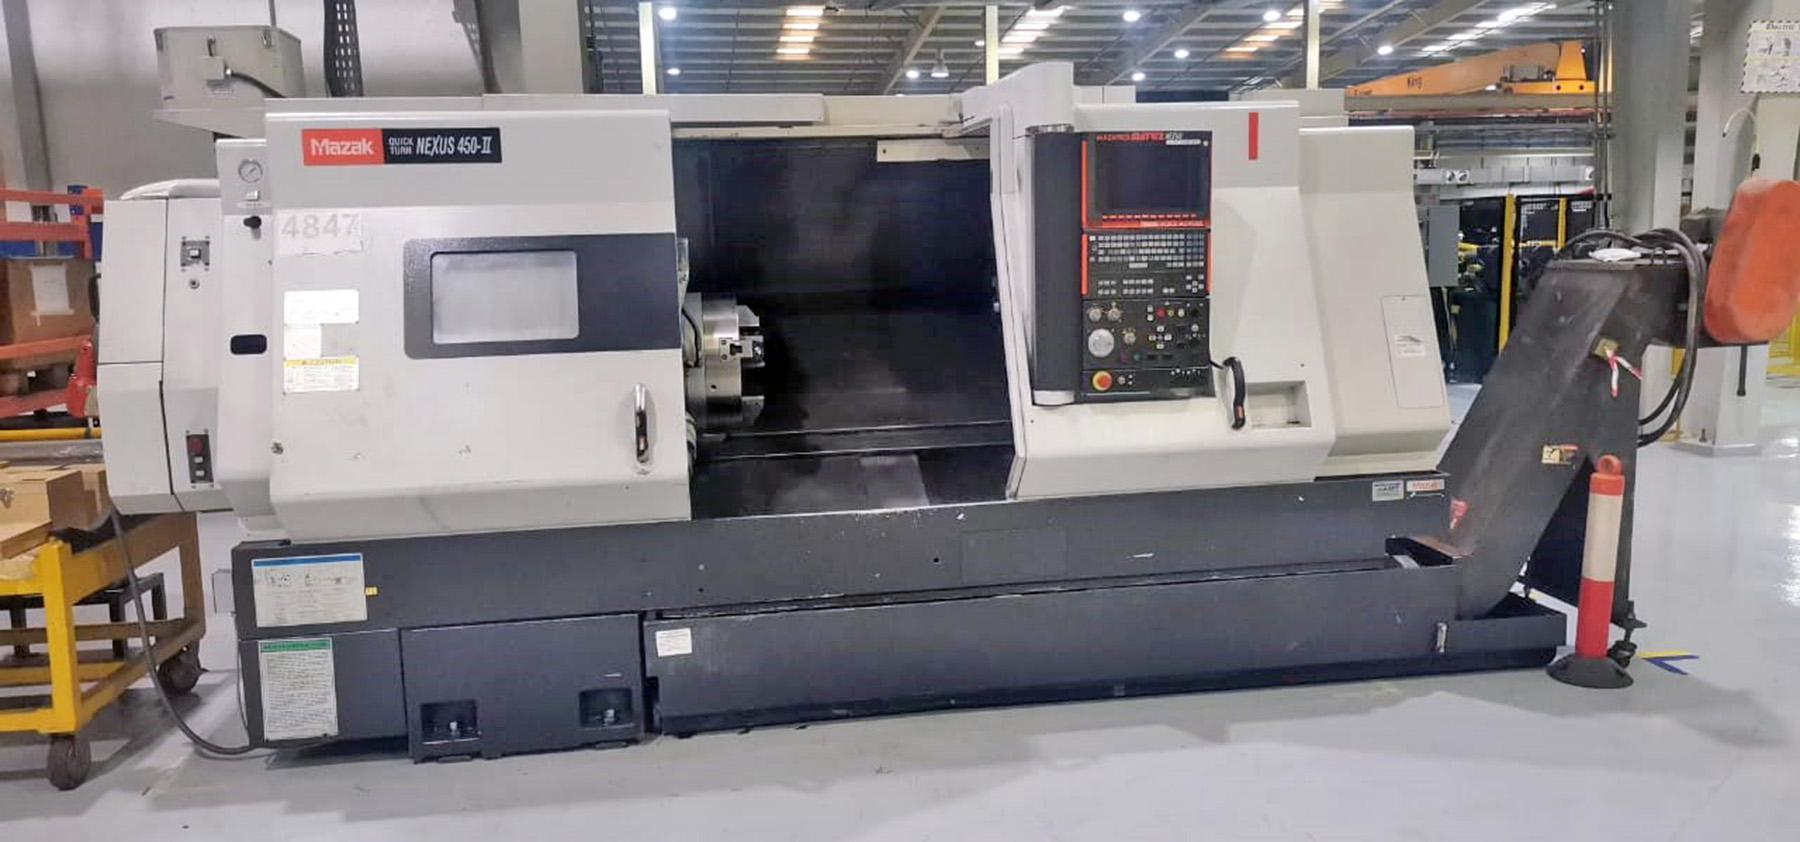 USED, MAZAK QUICK TURN NEXUS 450-II CNC TURNING CENTER